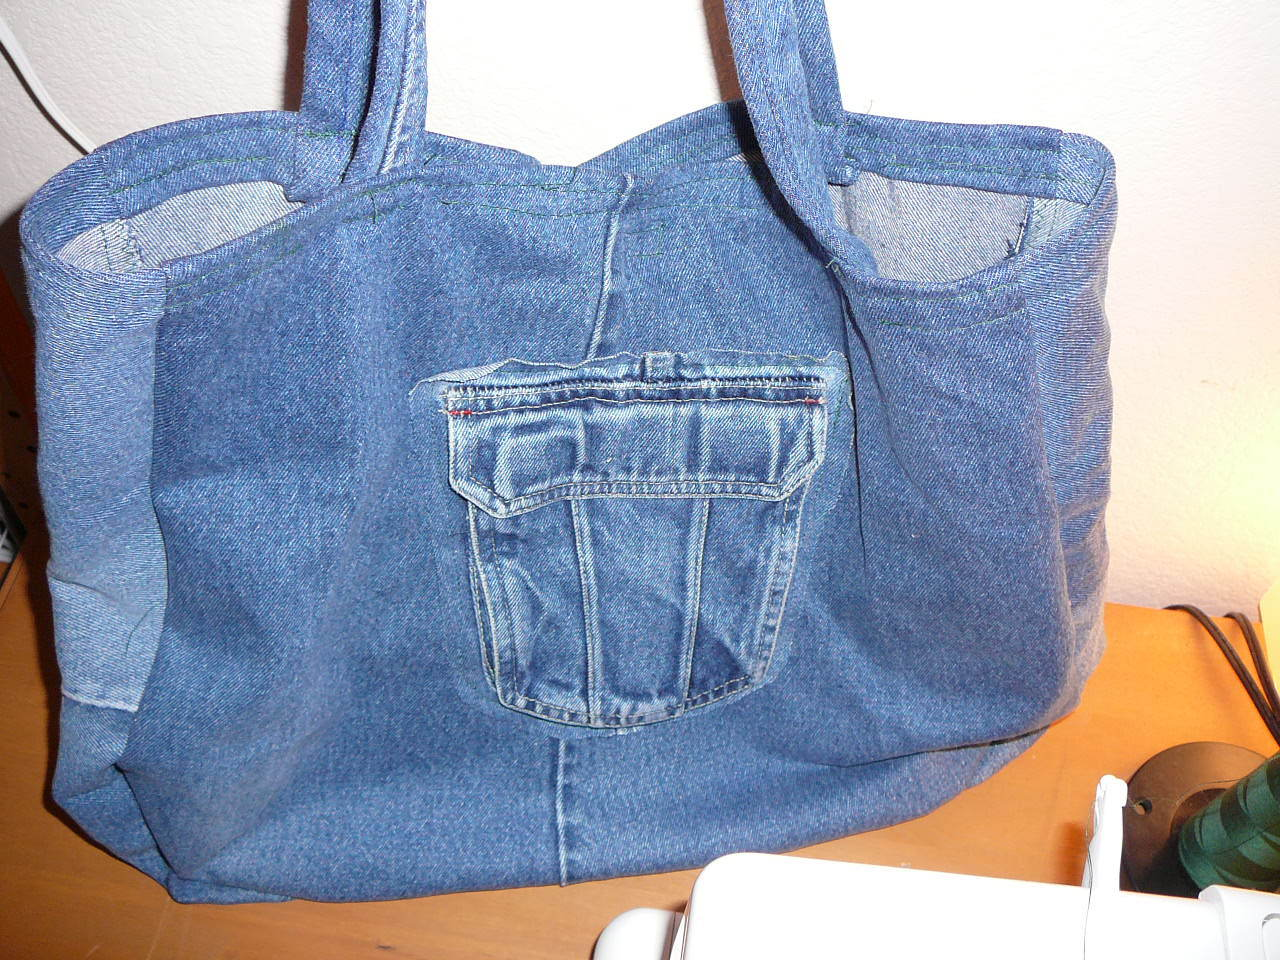 Ways to recycle old jeans - Denim Bag